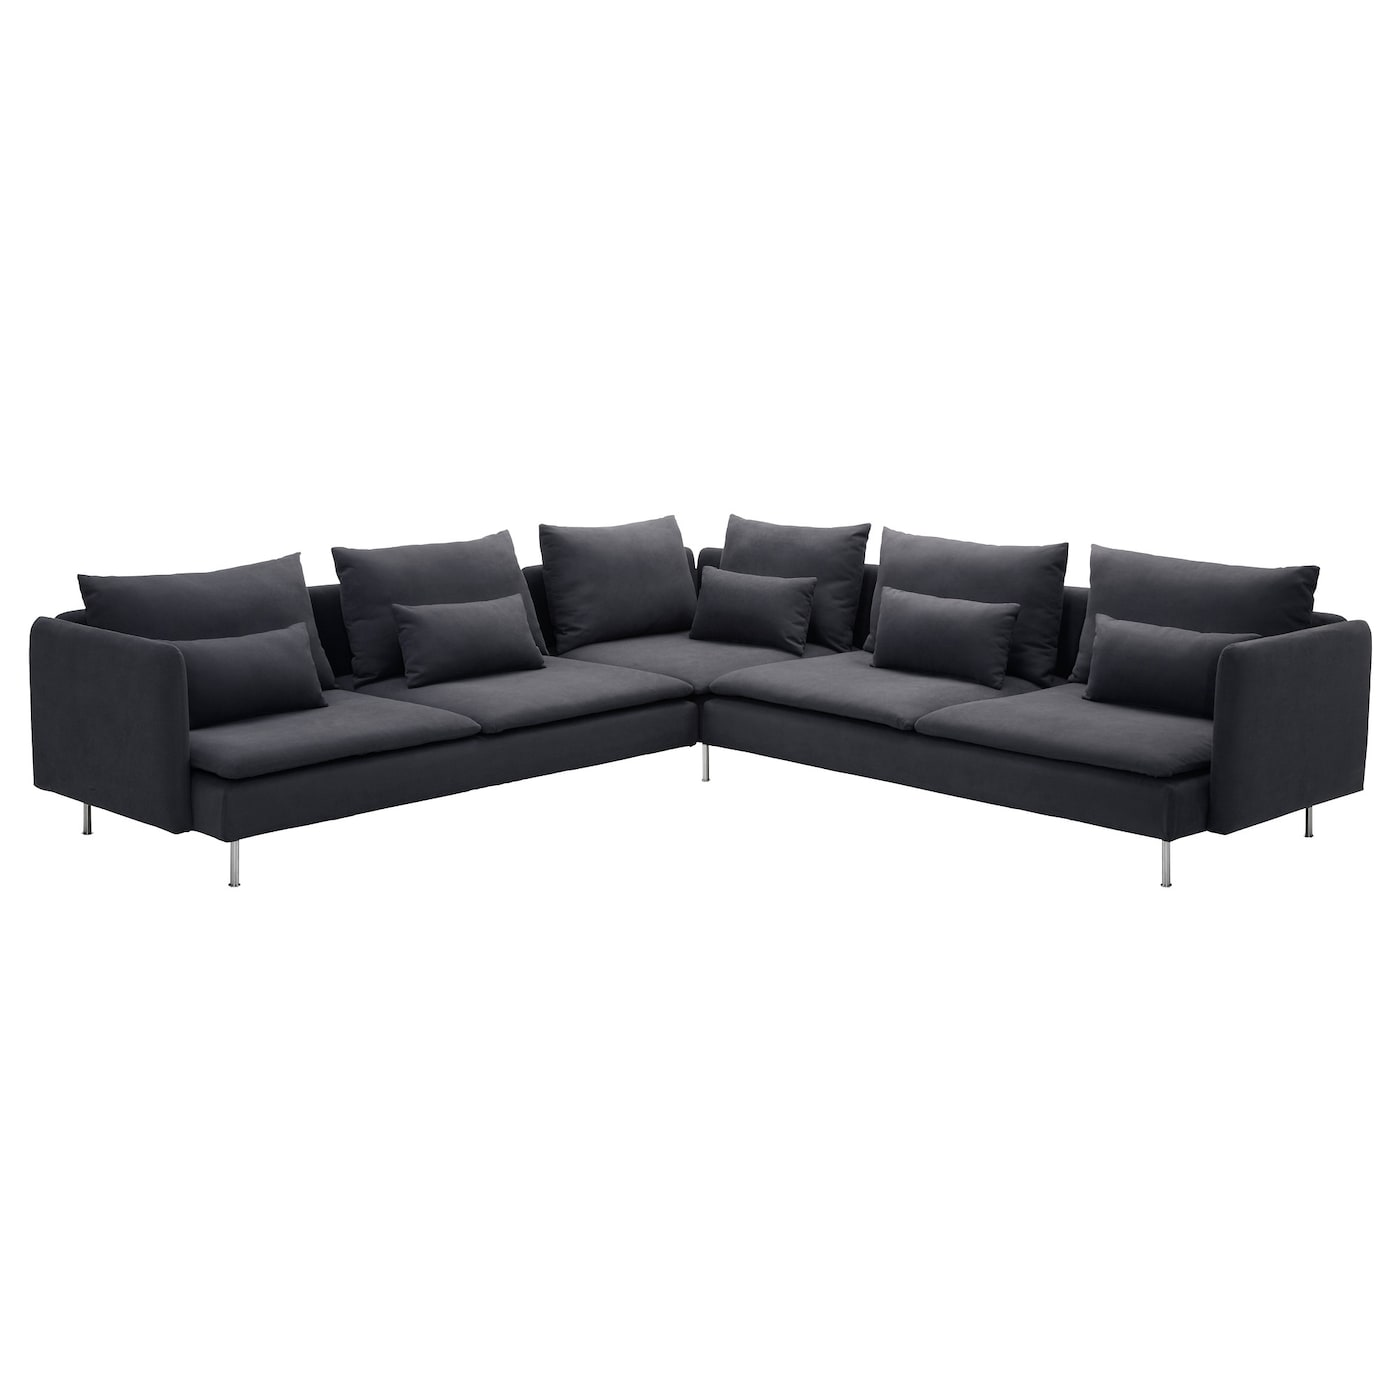 IKEA SÖDERHAMN corner sofa, 6-seat Hardwearing microfibre which is soft and smooth.